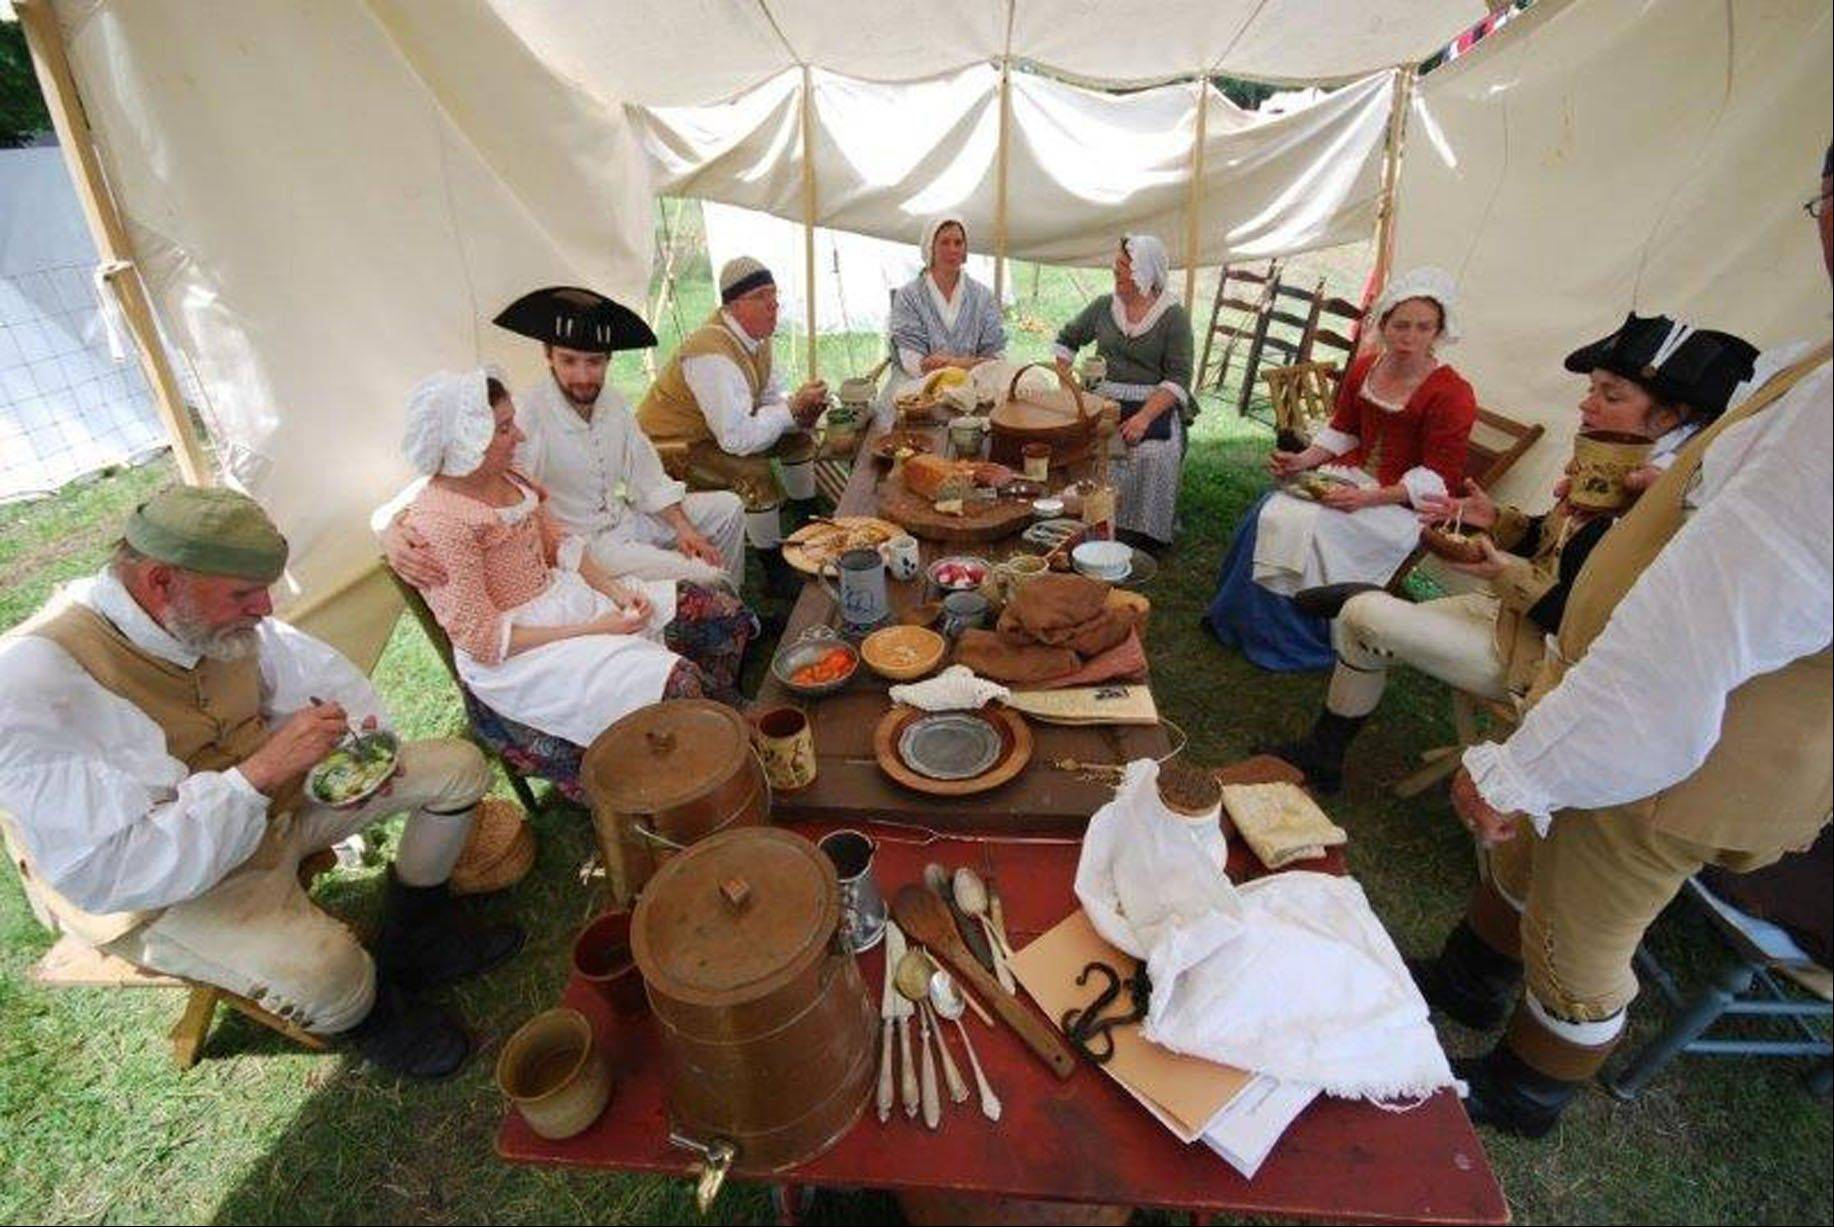 A group of re-enactors eat together at a Revolutionary War camp site.